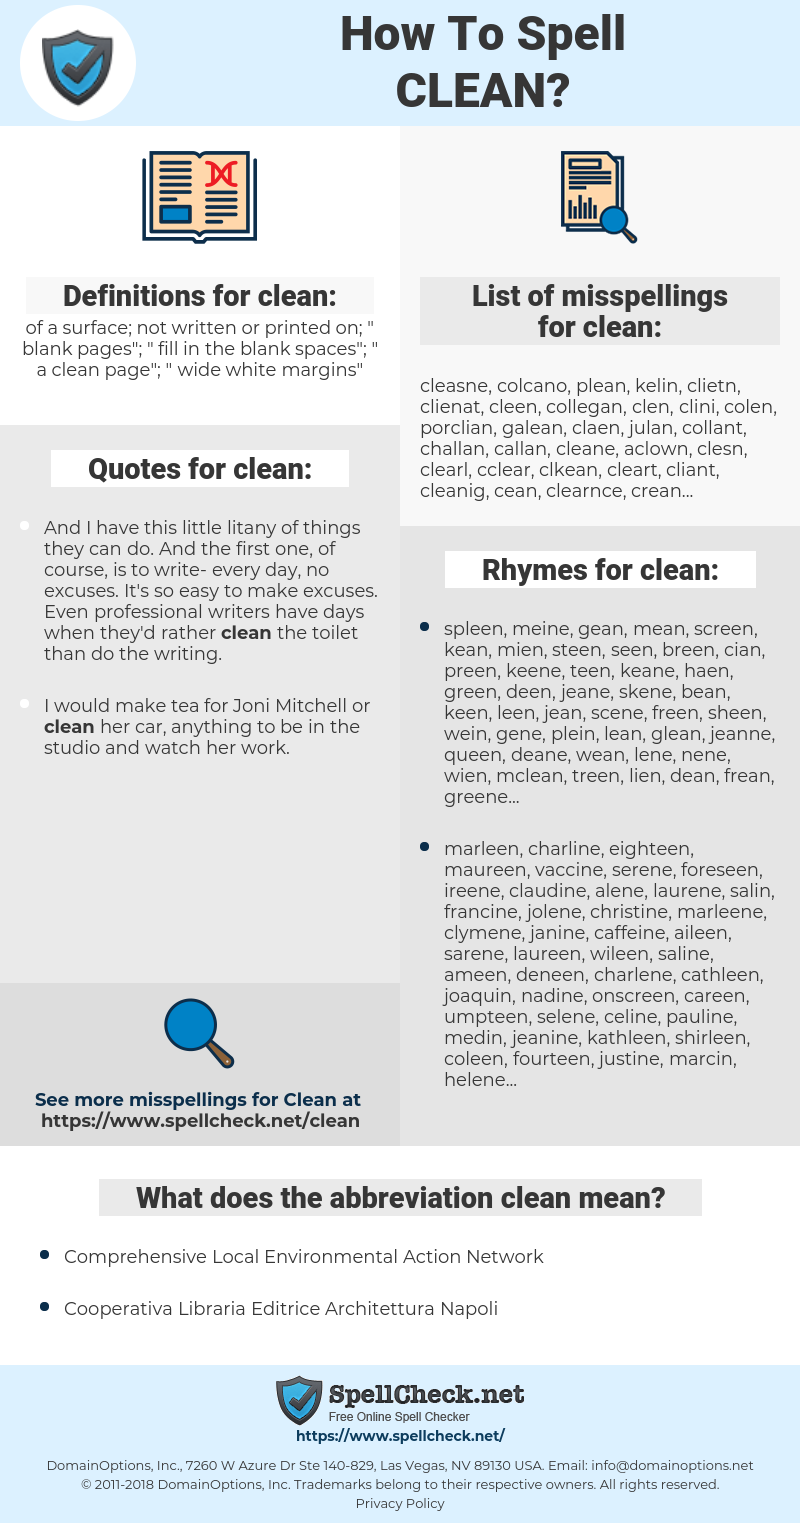 clean, spellcheck clean, how to spell clean, how do you spell clean, correct spelling for clean